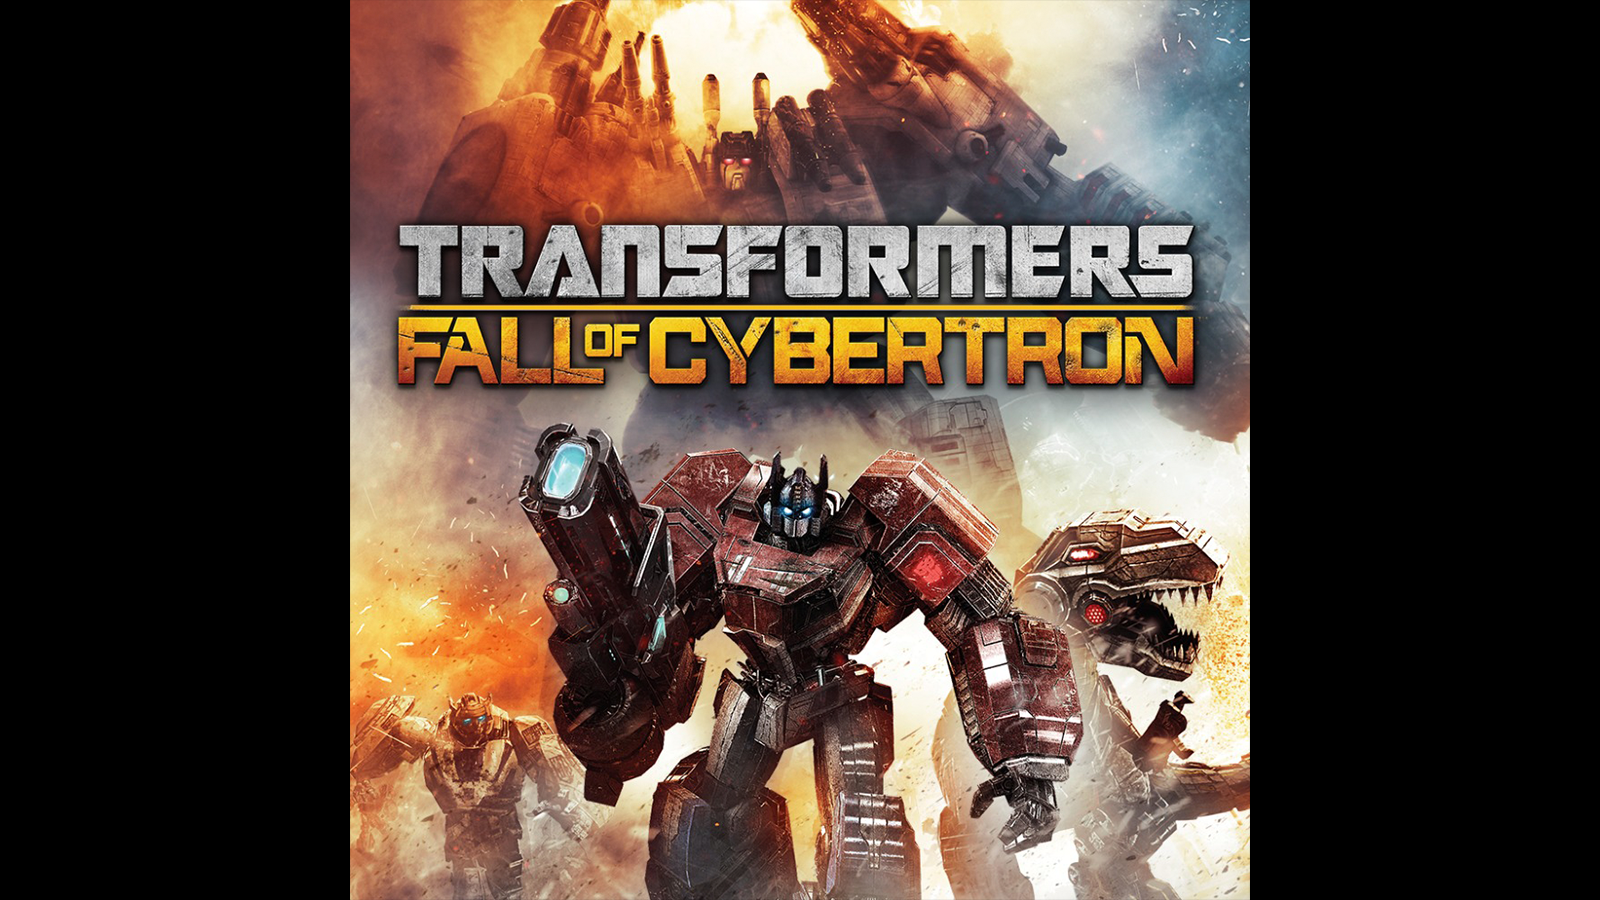 Transformers fall of cybertron pc game free download ocean of games.